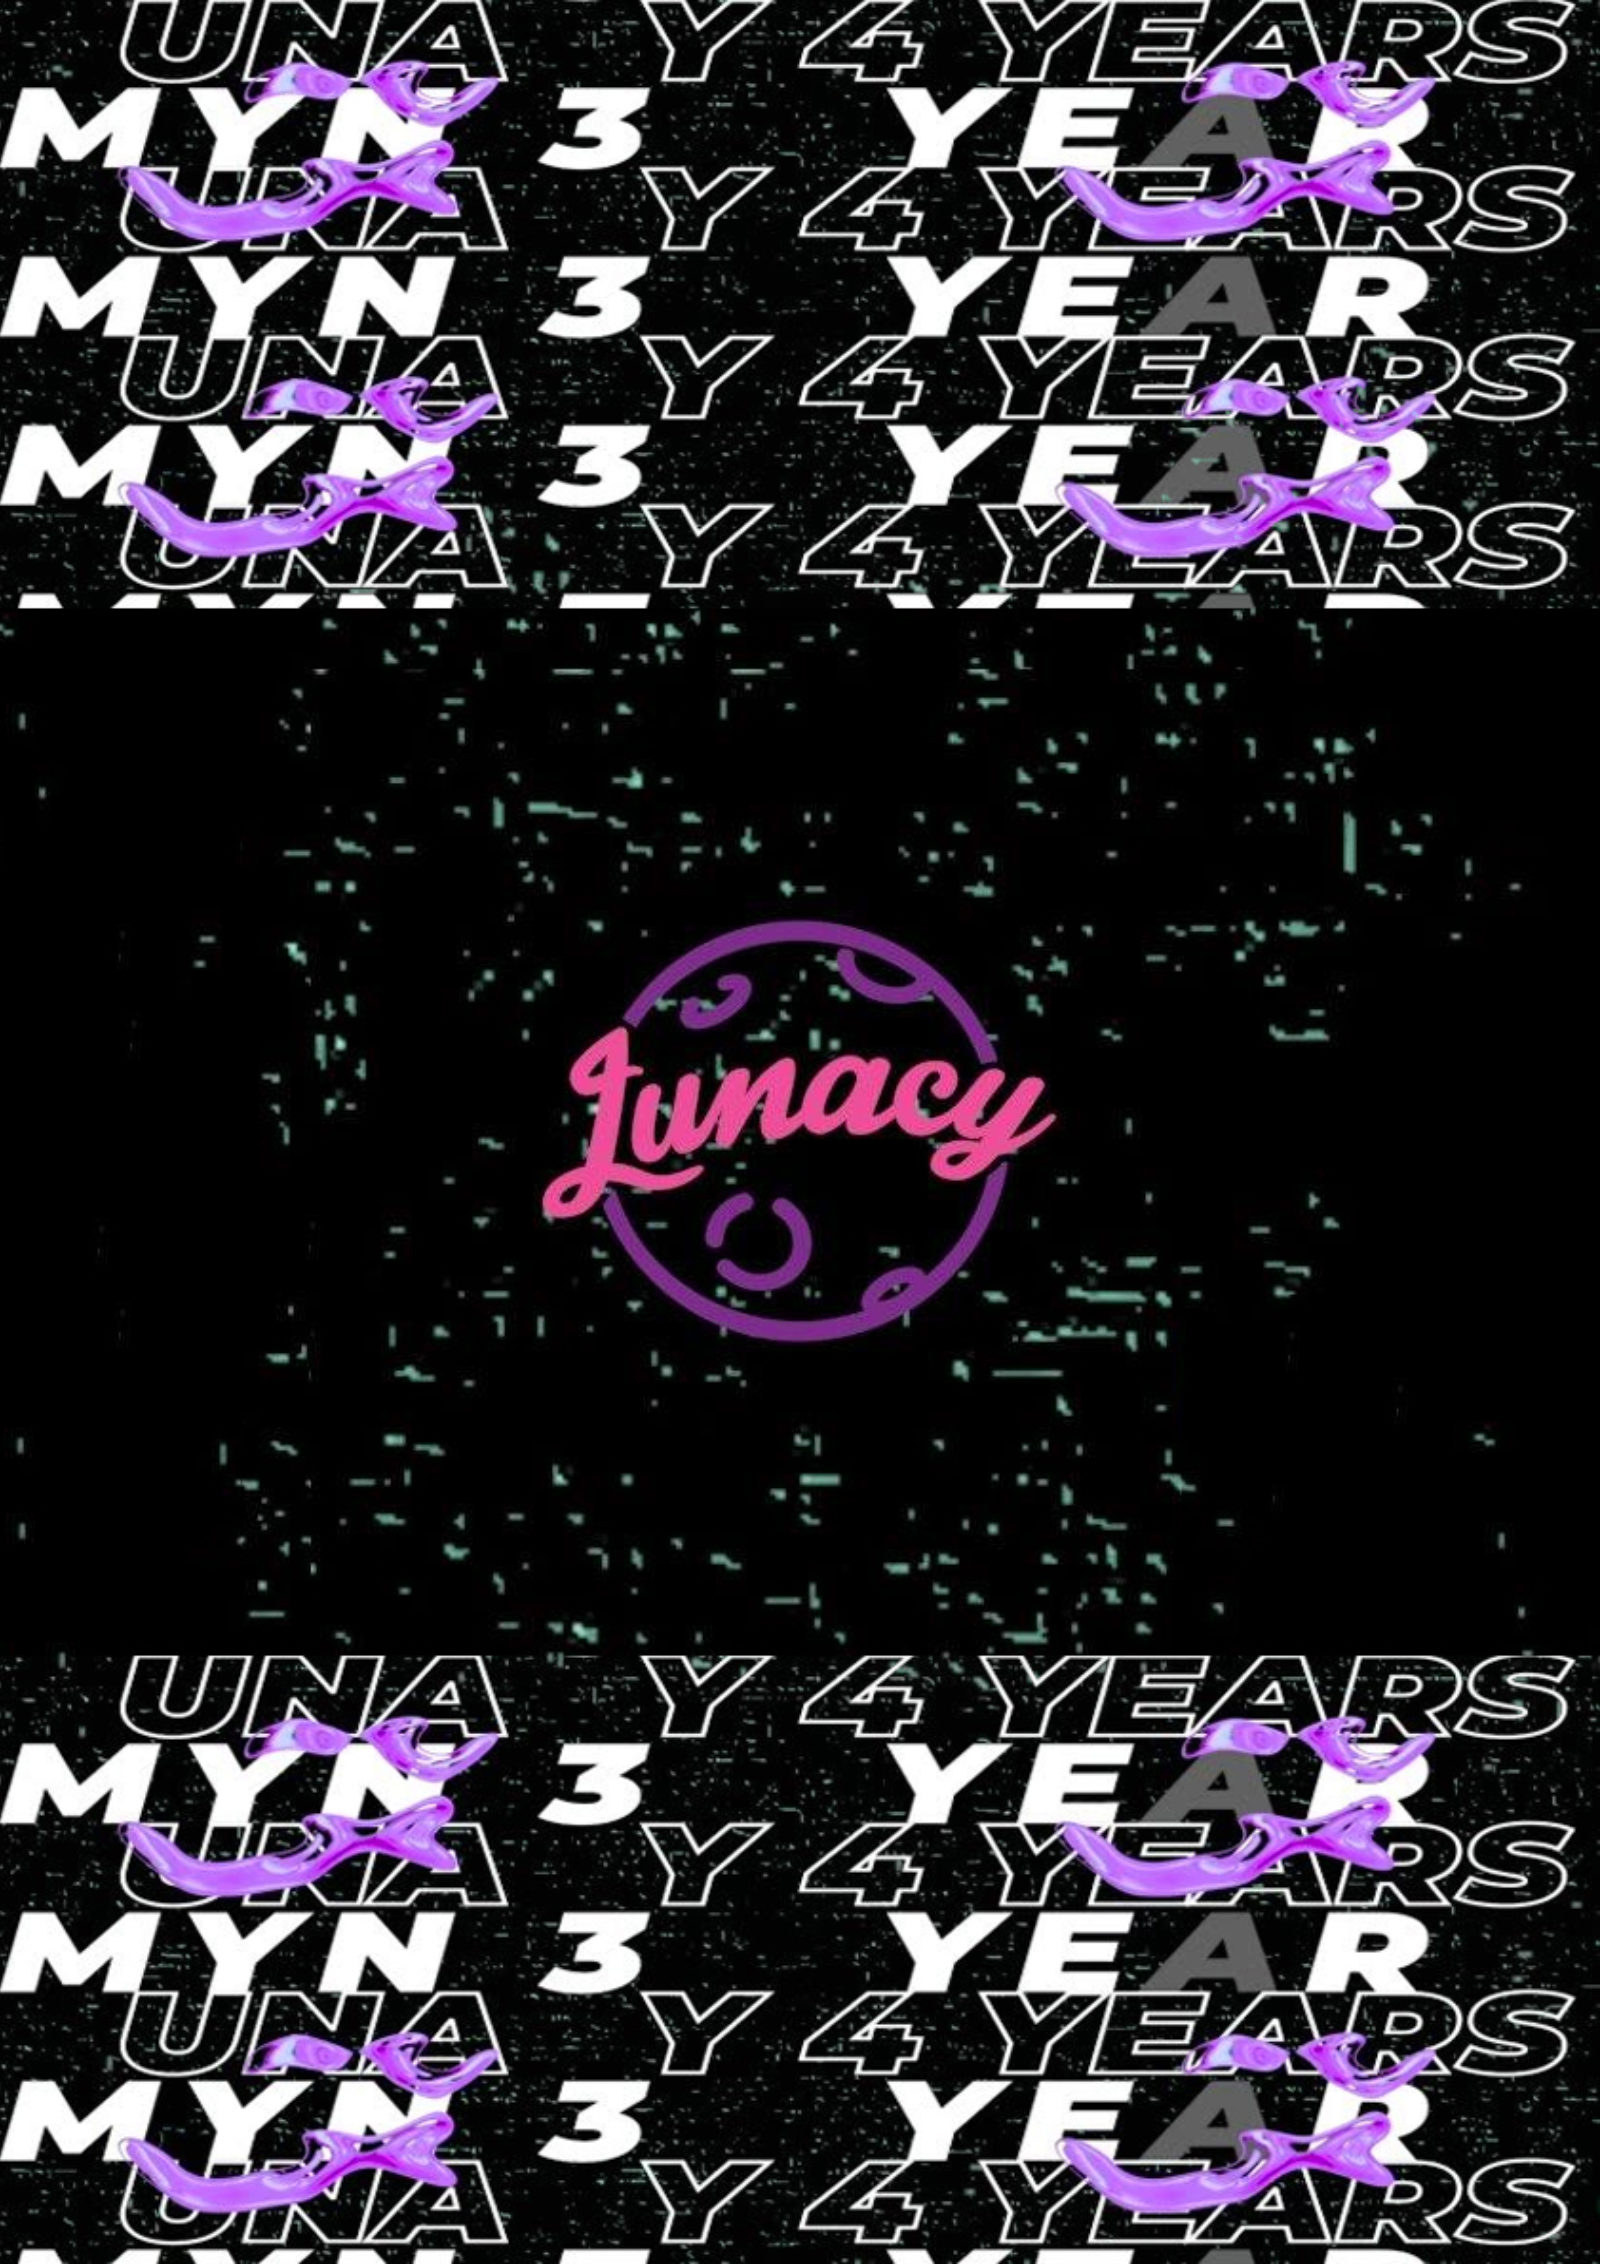 4 Years of Lunacy - 30 Years of MYN